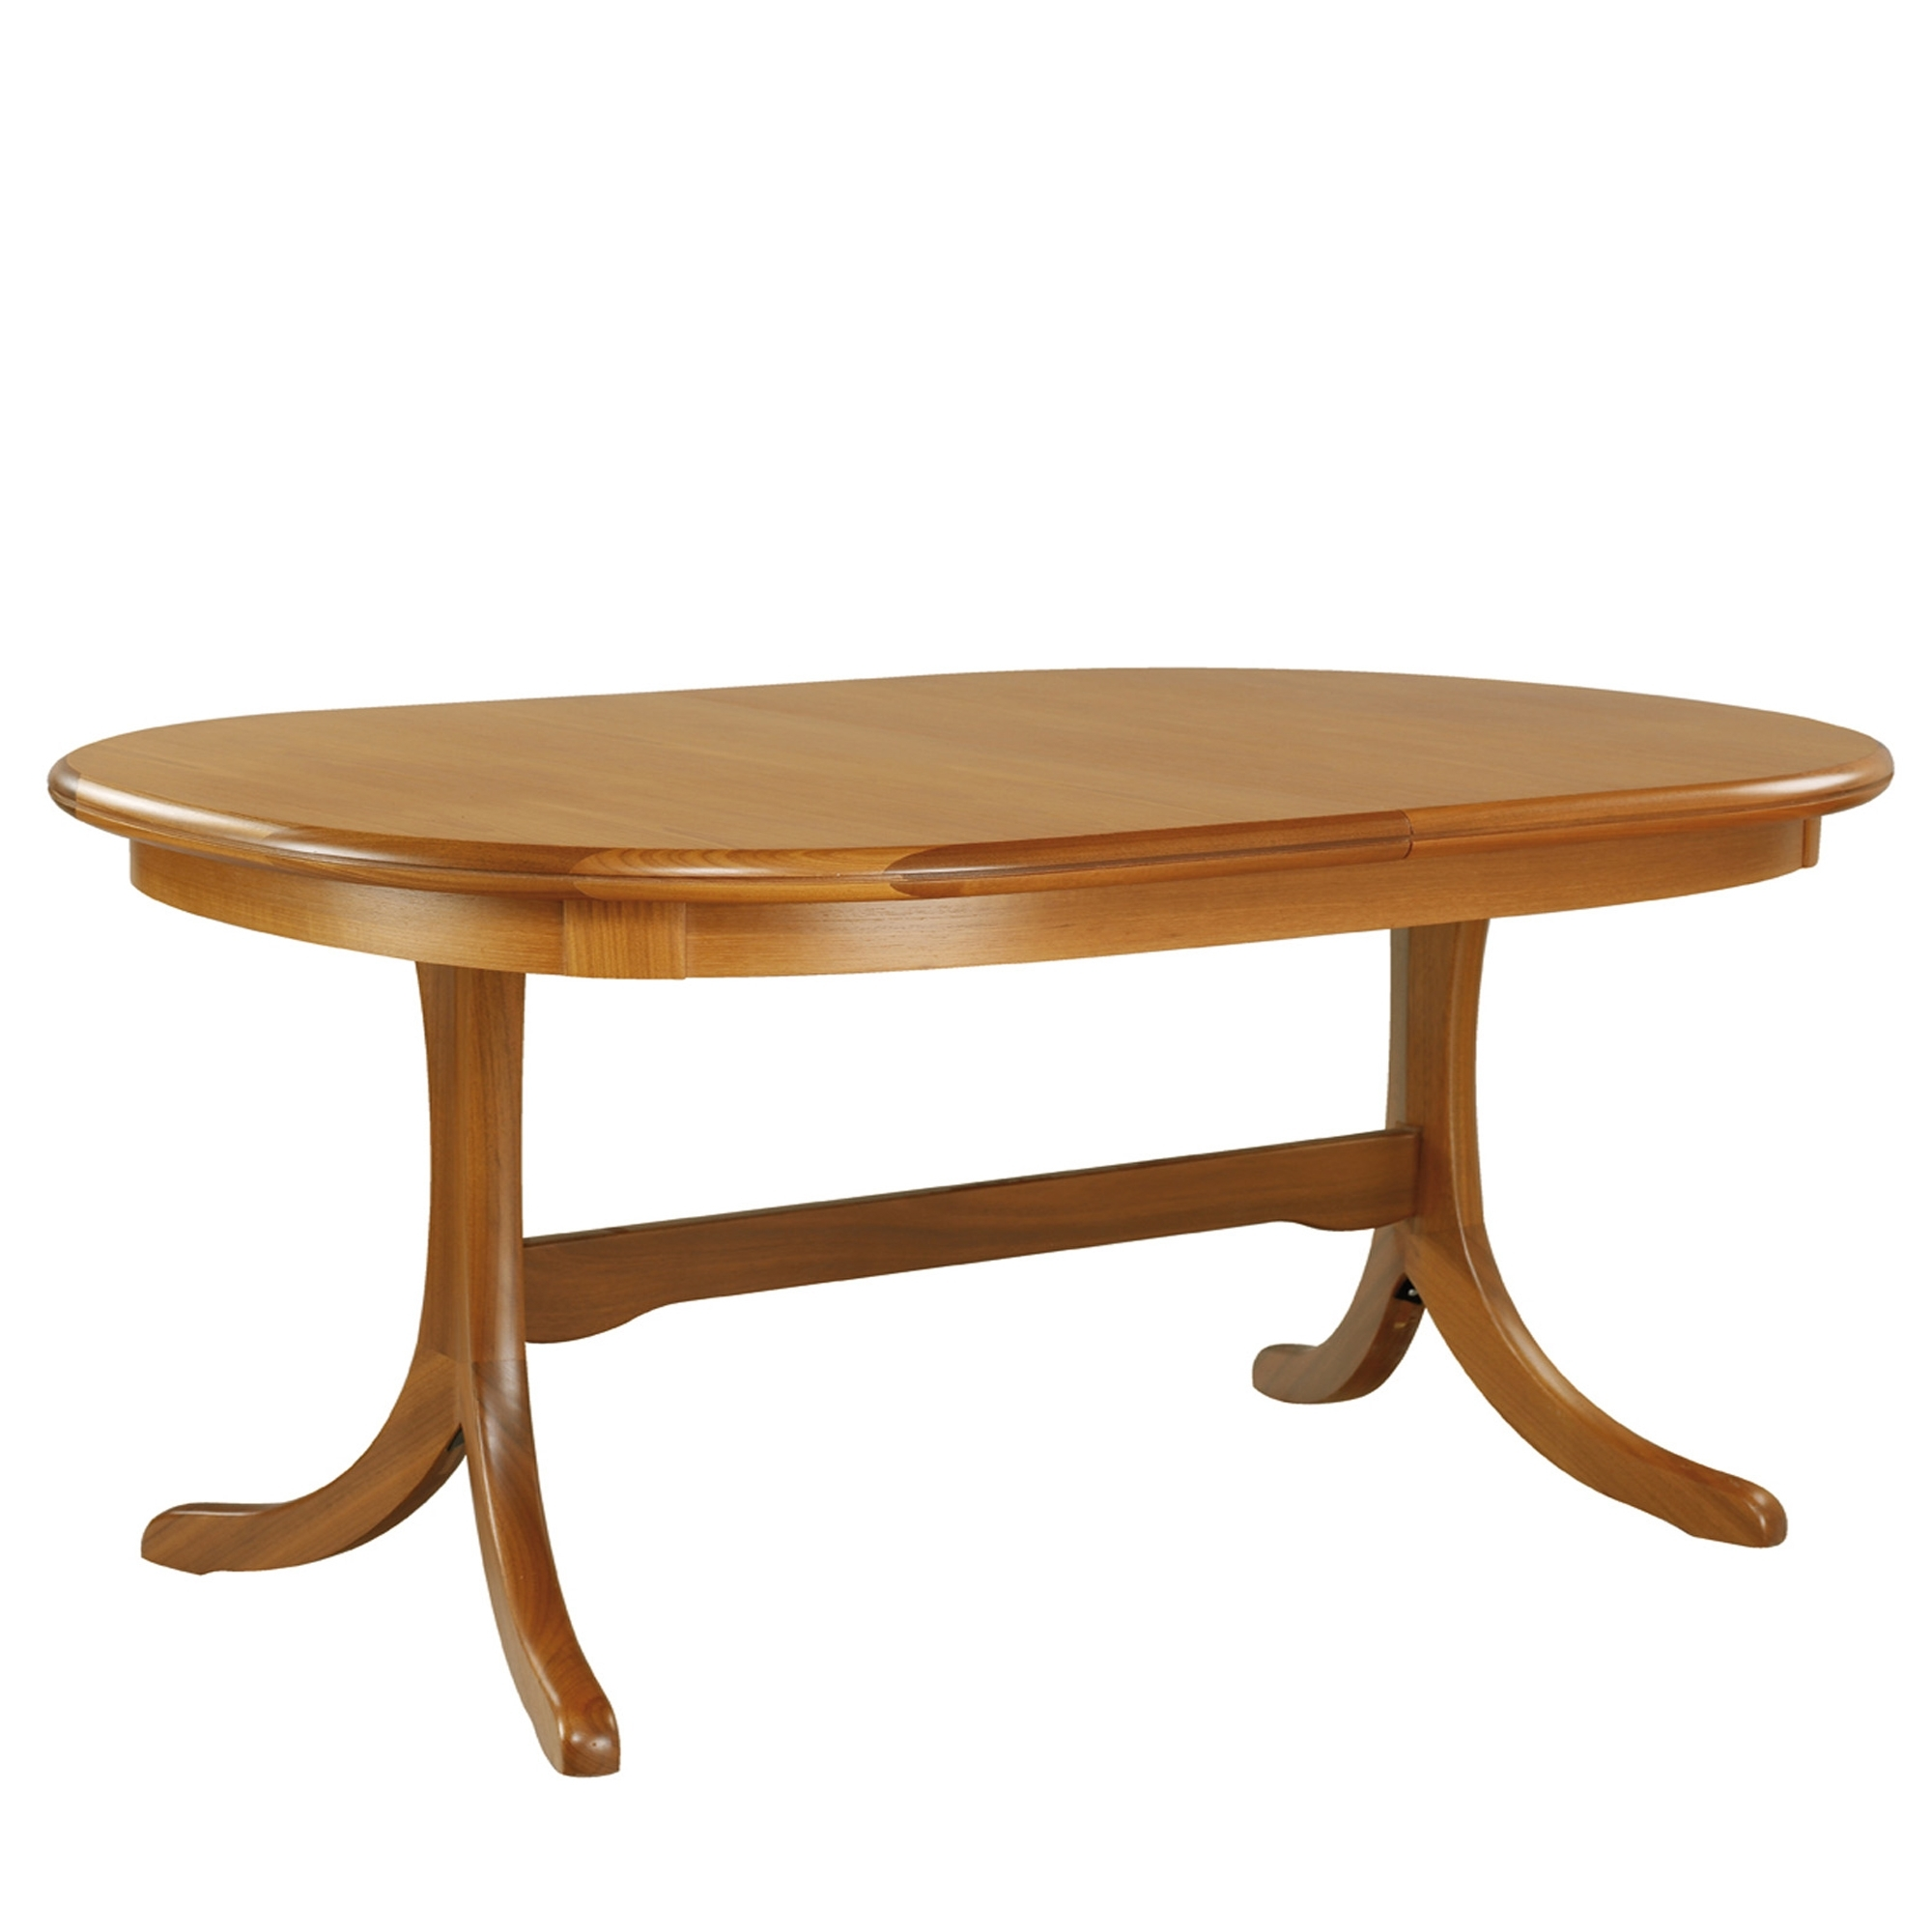 Sutcliffe trafalgar teak goodwood oval dining table Oval dining table